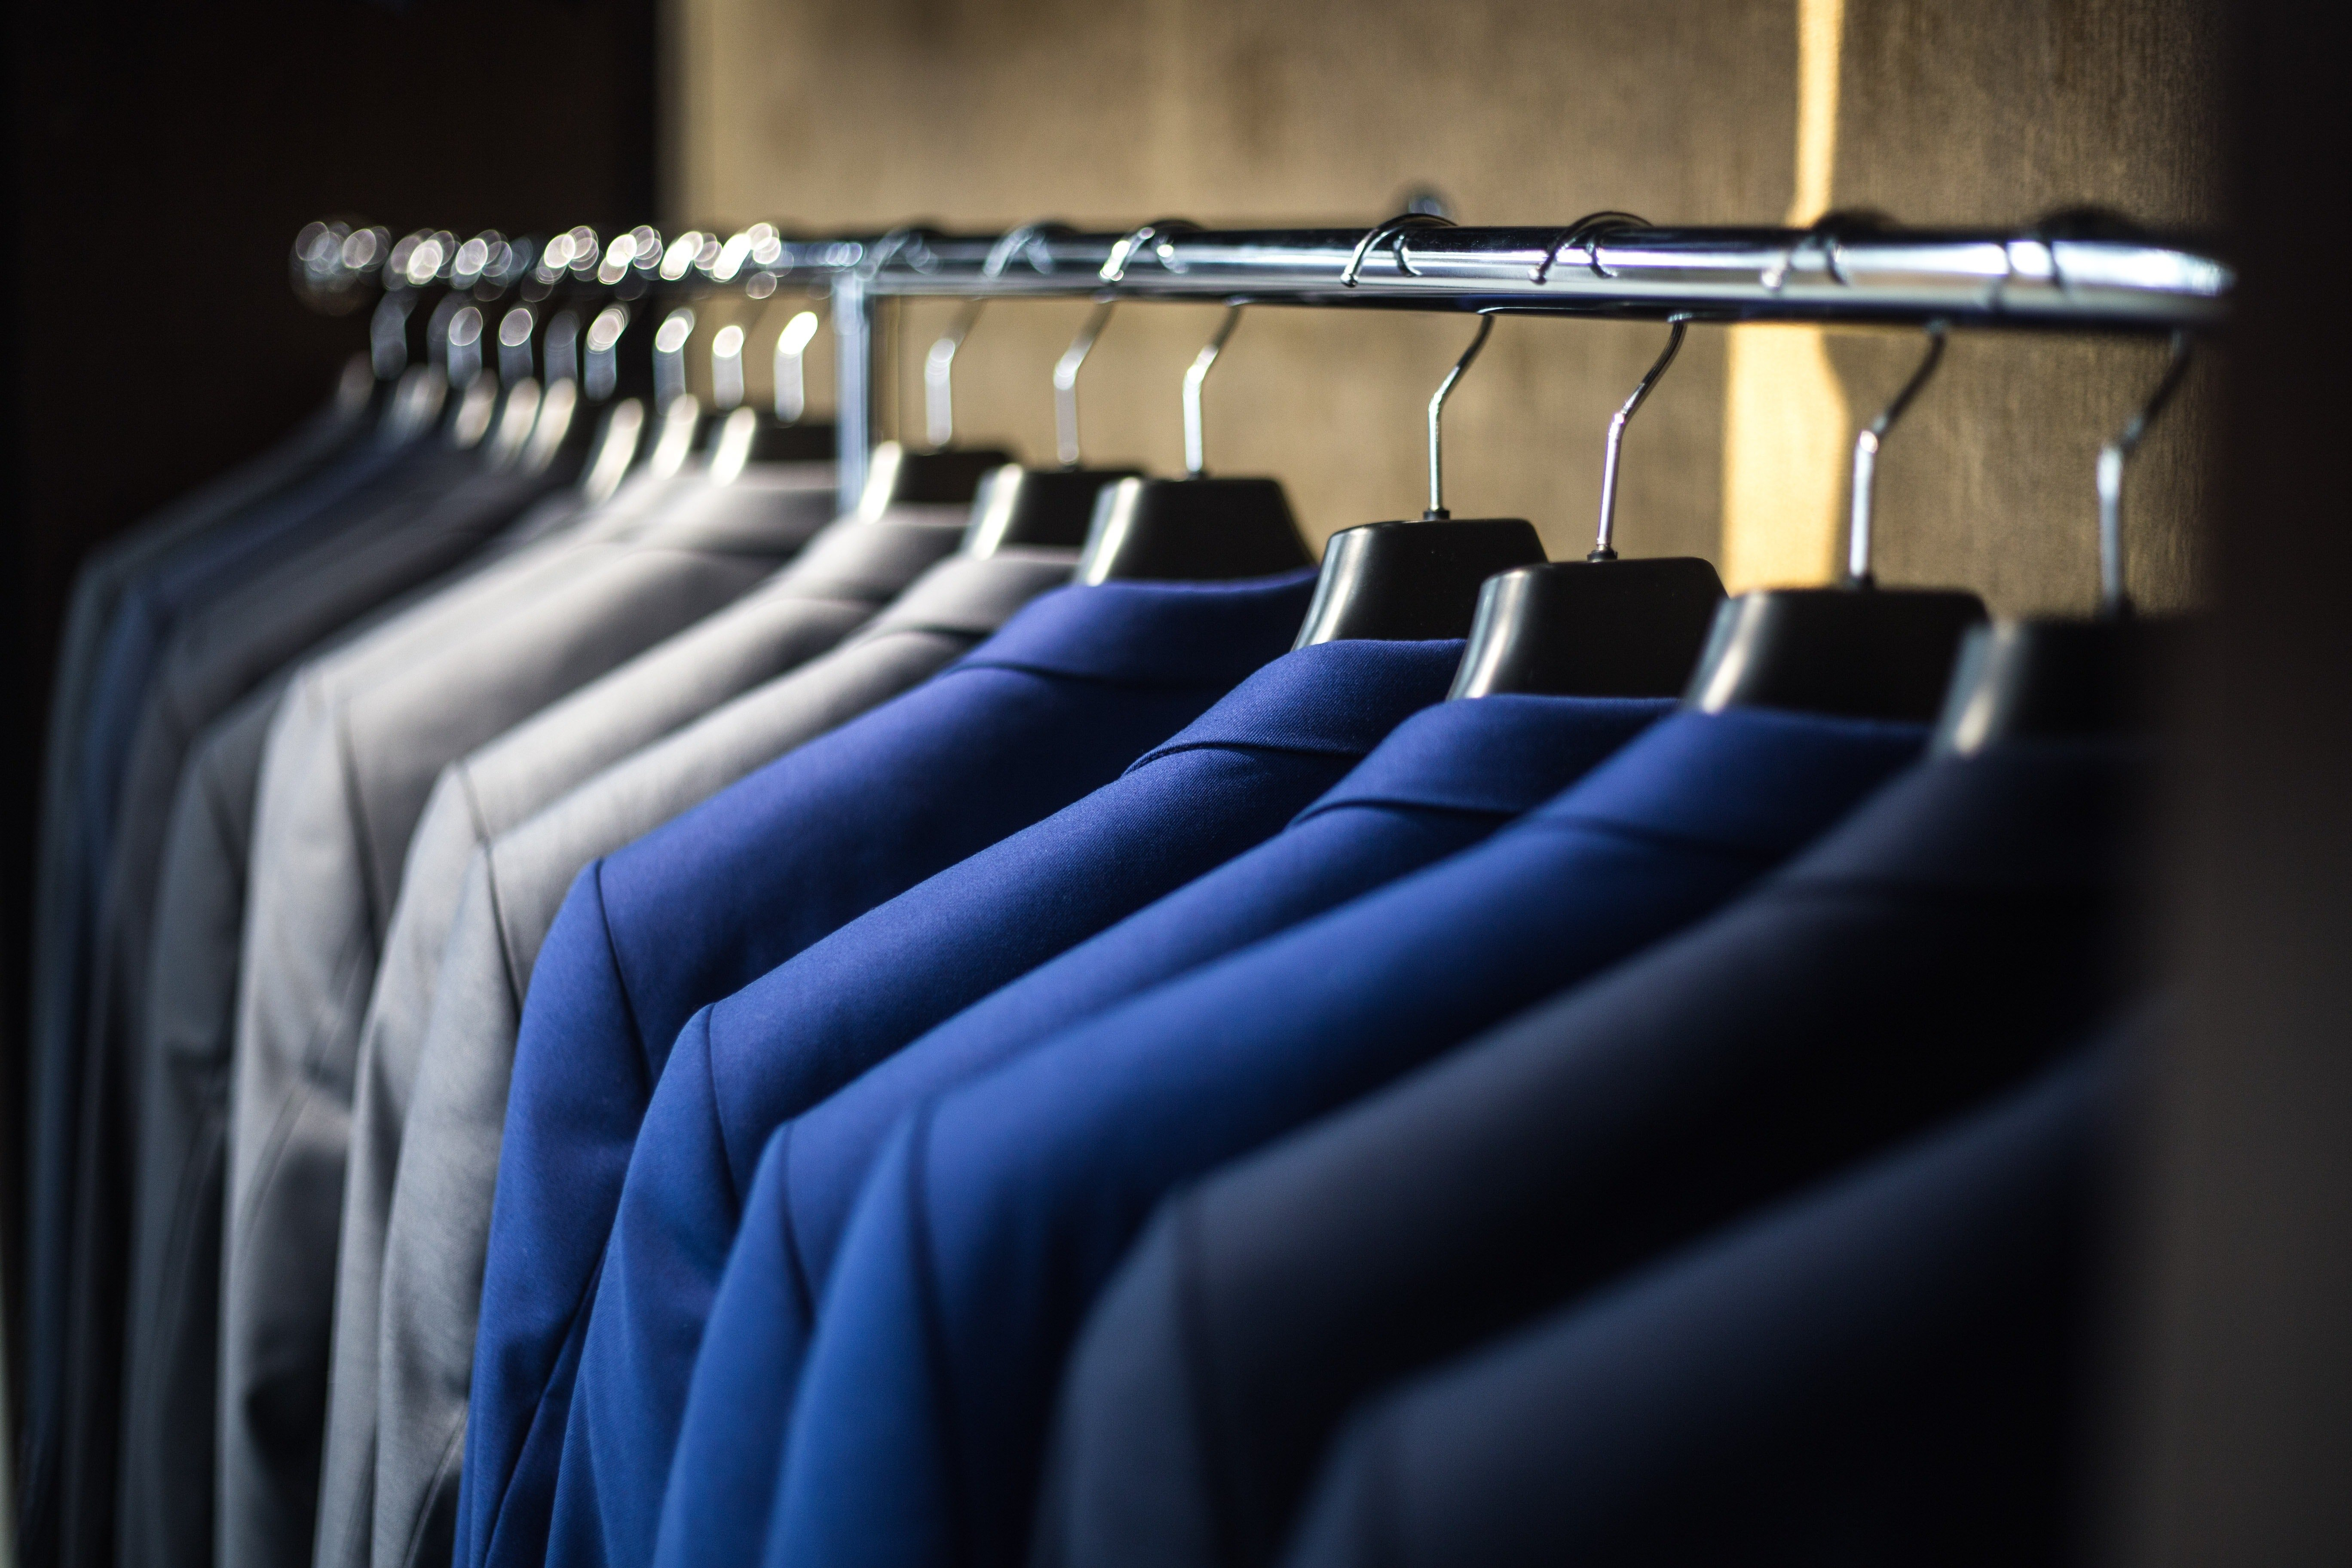 Pictured - A photo of different shades of colored blazers hung on a row | Source: Pexels